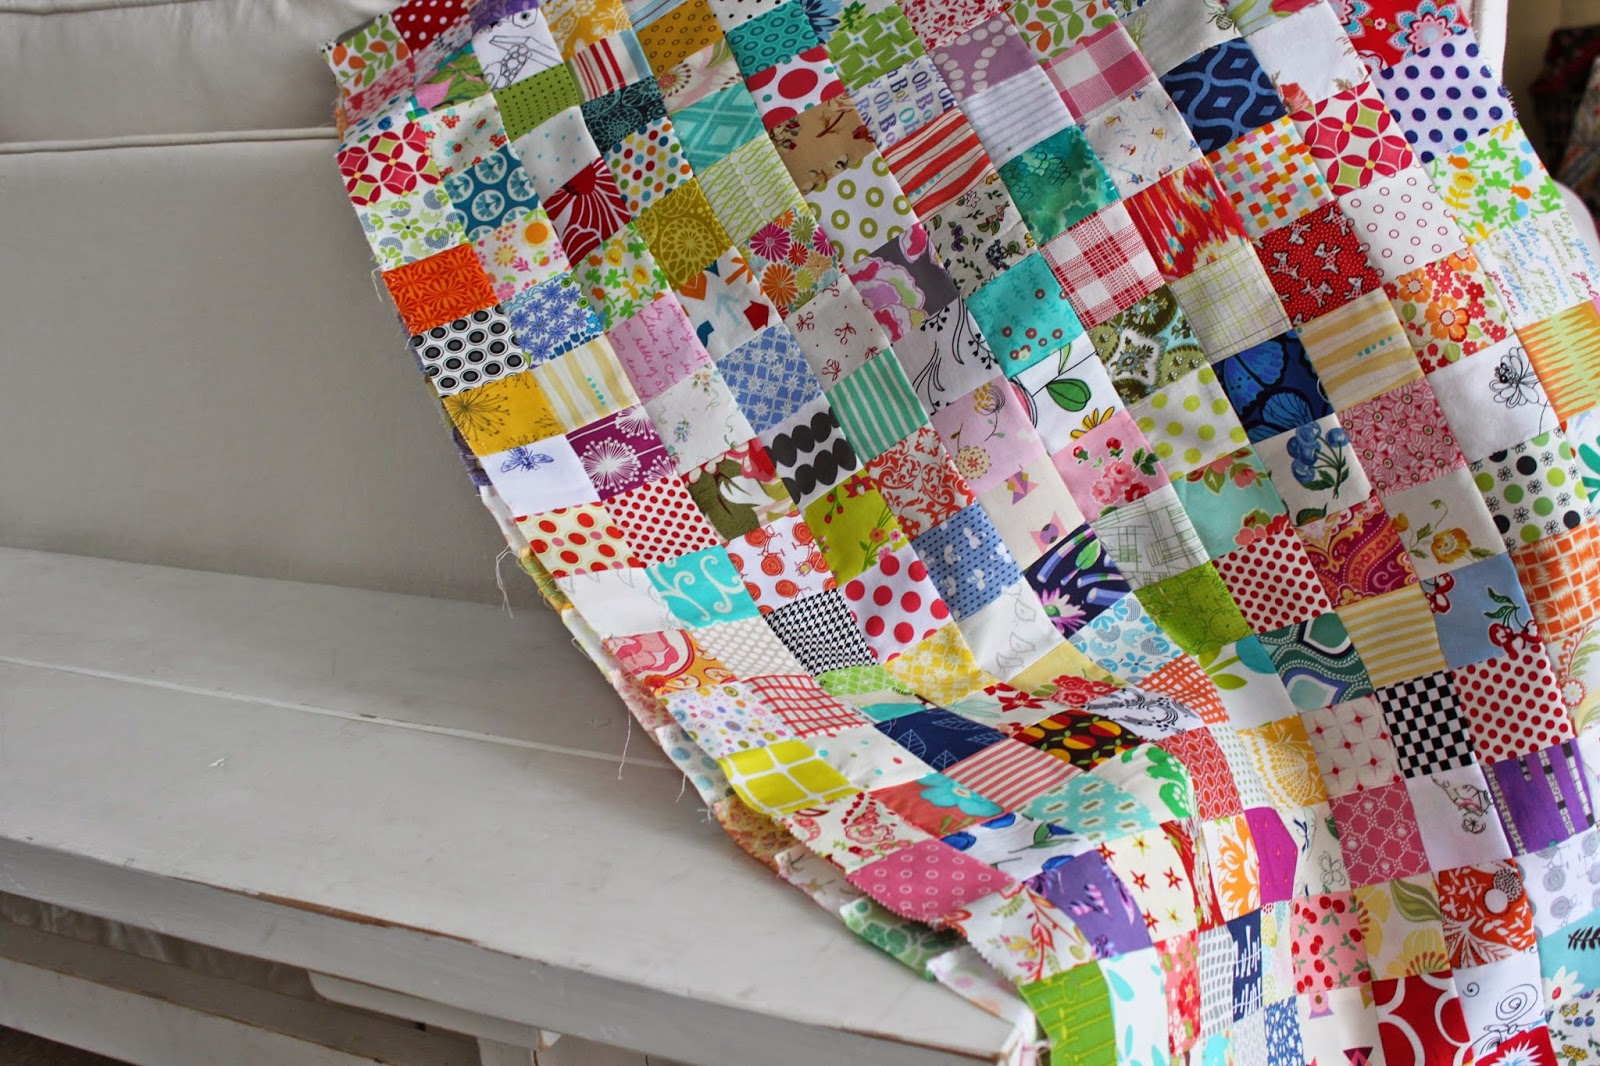 Lollyquiltz: All Those Squares!